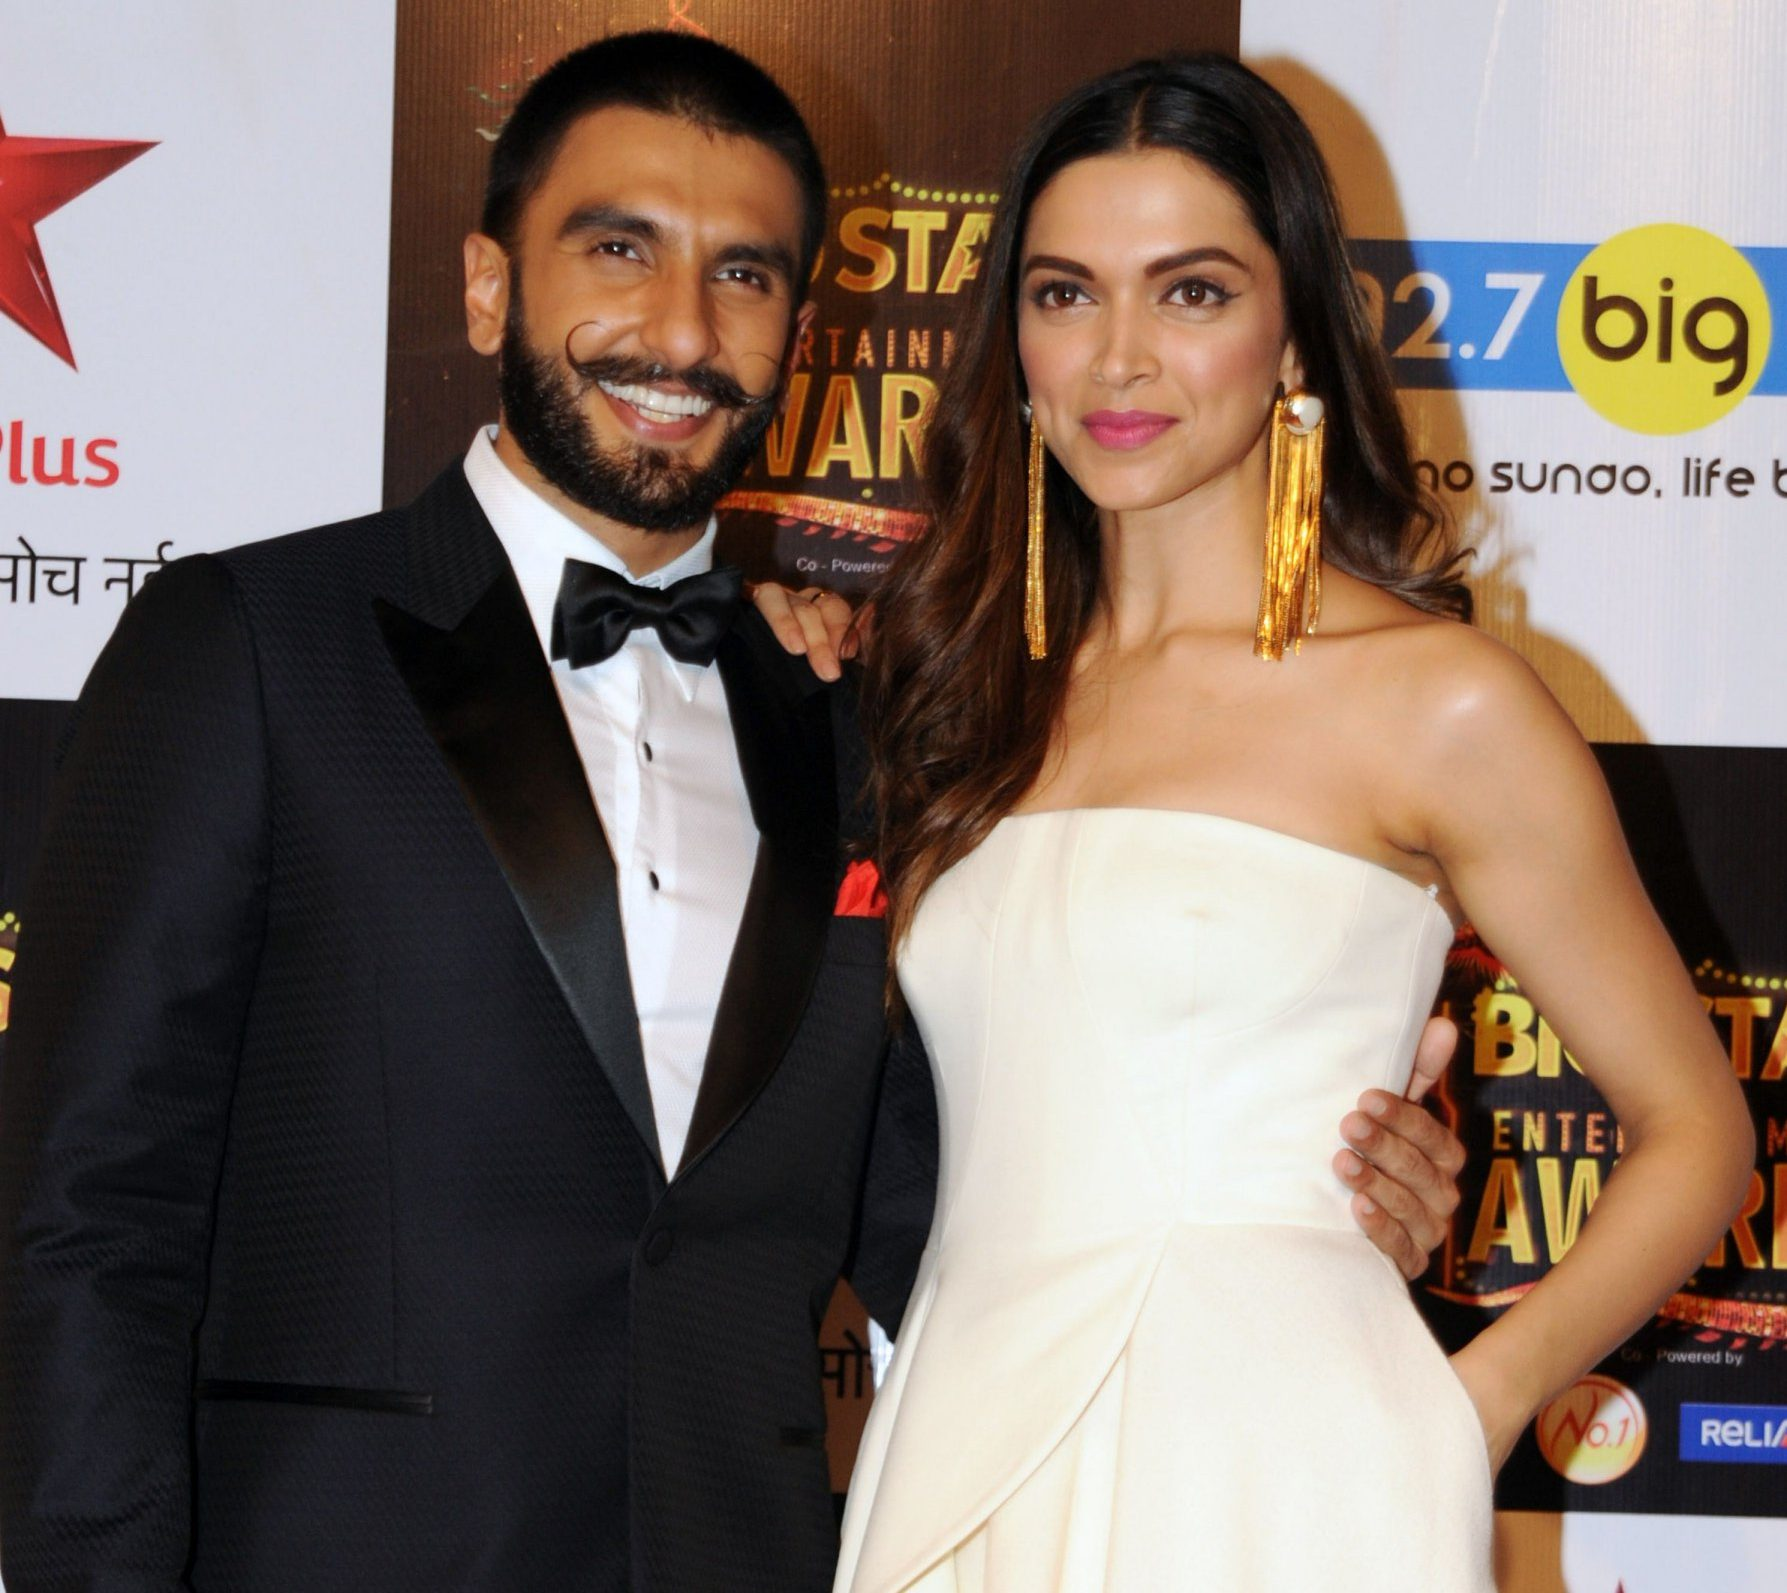 Deepika Padukone and Ranveer Singh 'ask wedding guest to delete picture' as they prepare to marry